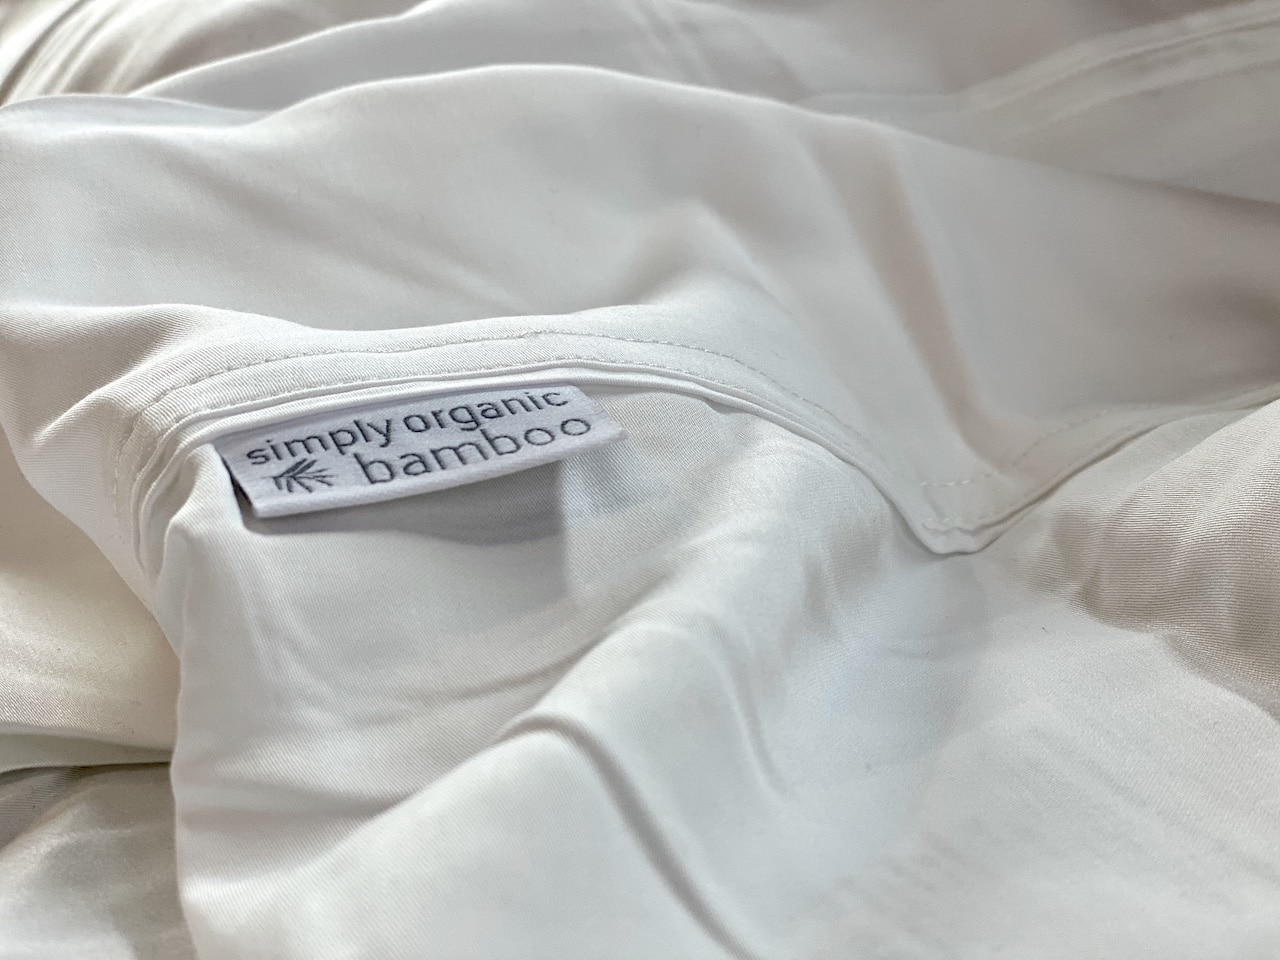 Simply Organic Bamboo Bed Sheets Review   Non Biased Reviews